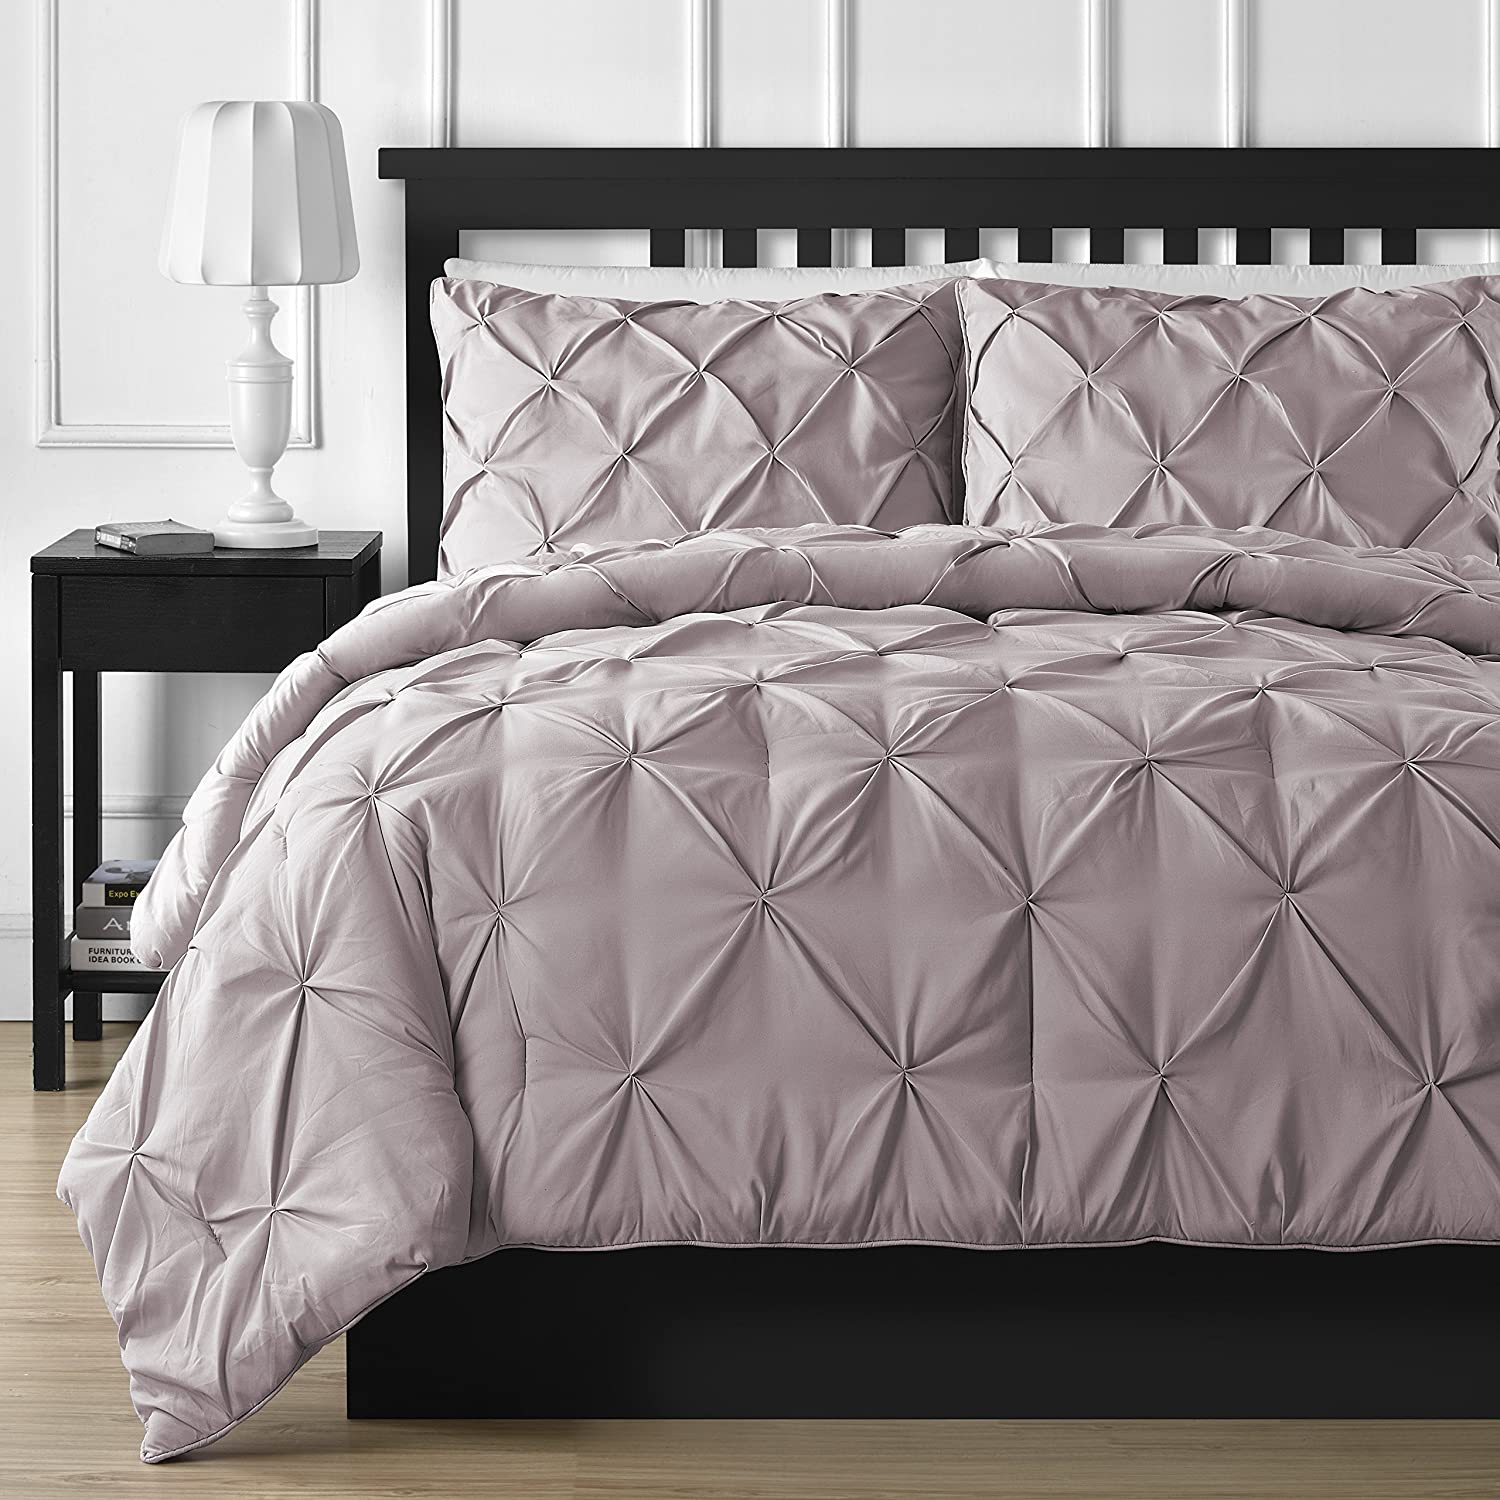 Comfy Bedding 3-piece Pinch Pleat Comforter Set